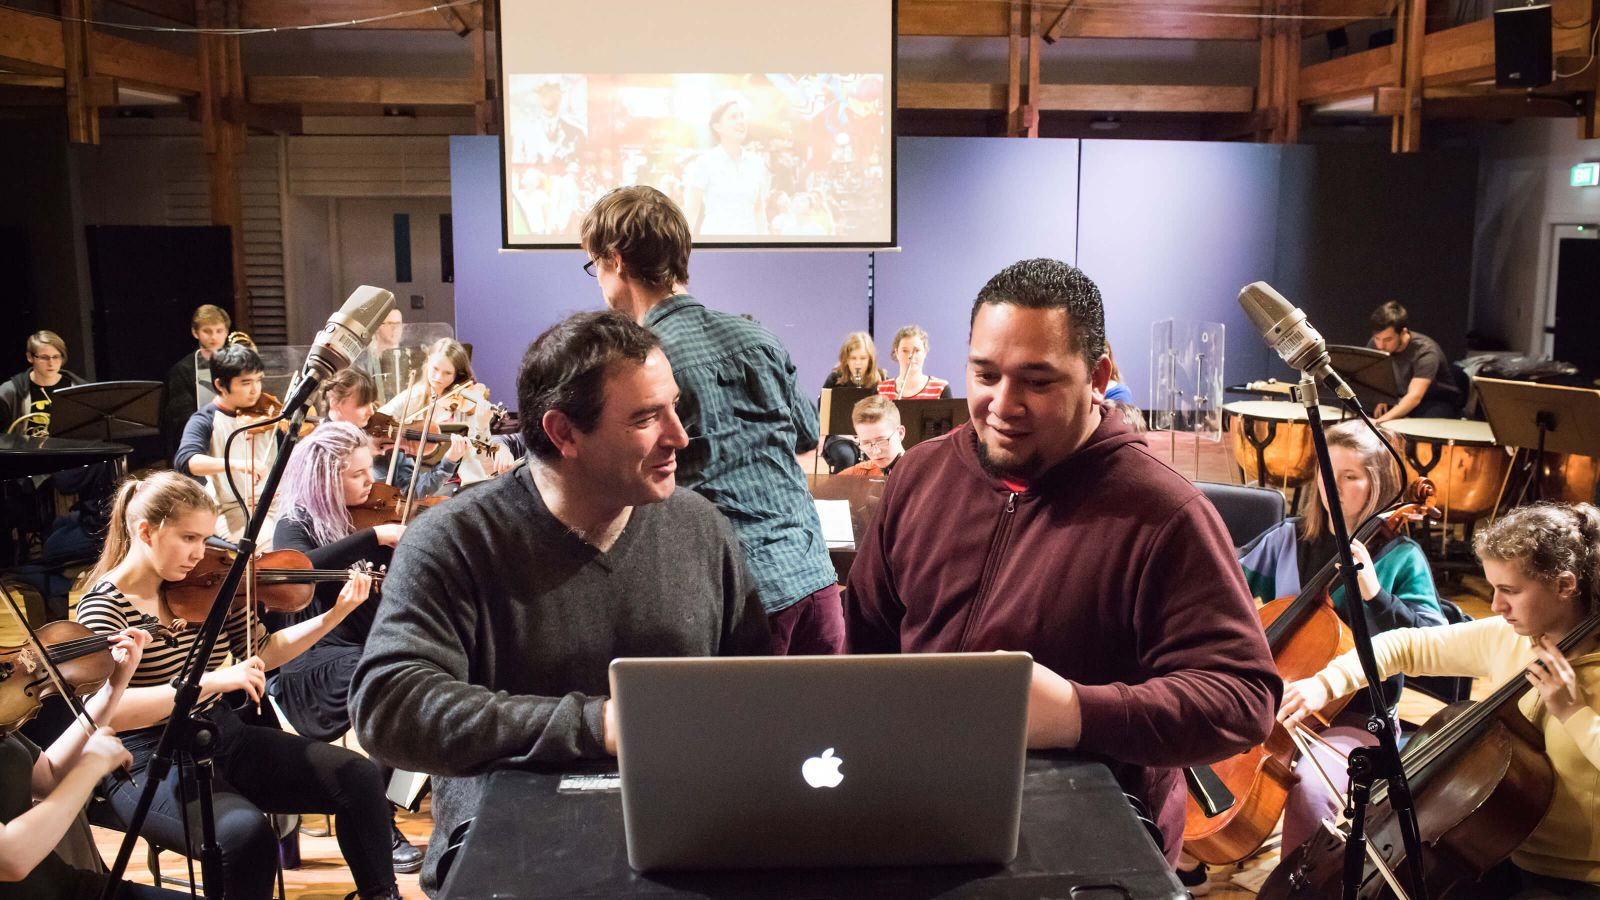 Music film scoring – A professor and a student look at a laptop, and stand between two freestanding microphones, while others play orchestral instruments in the background.